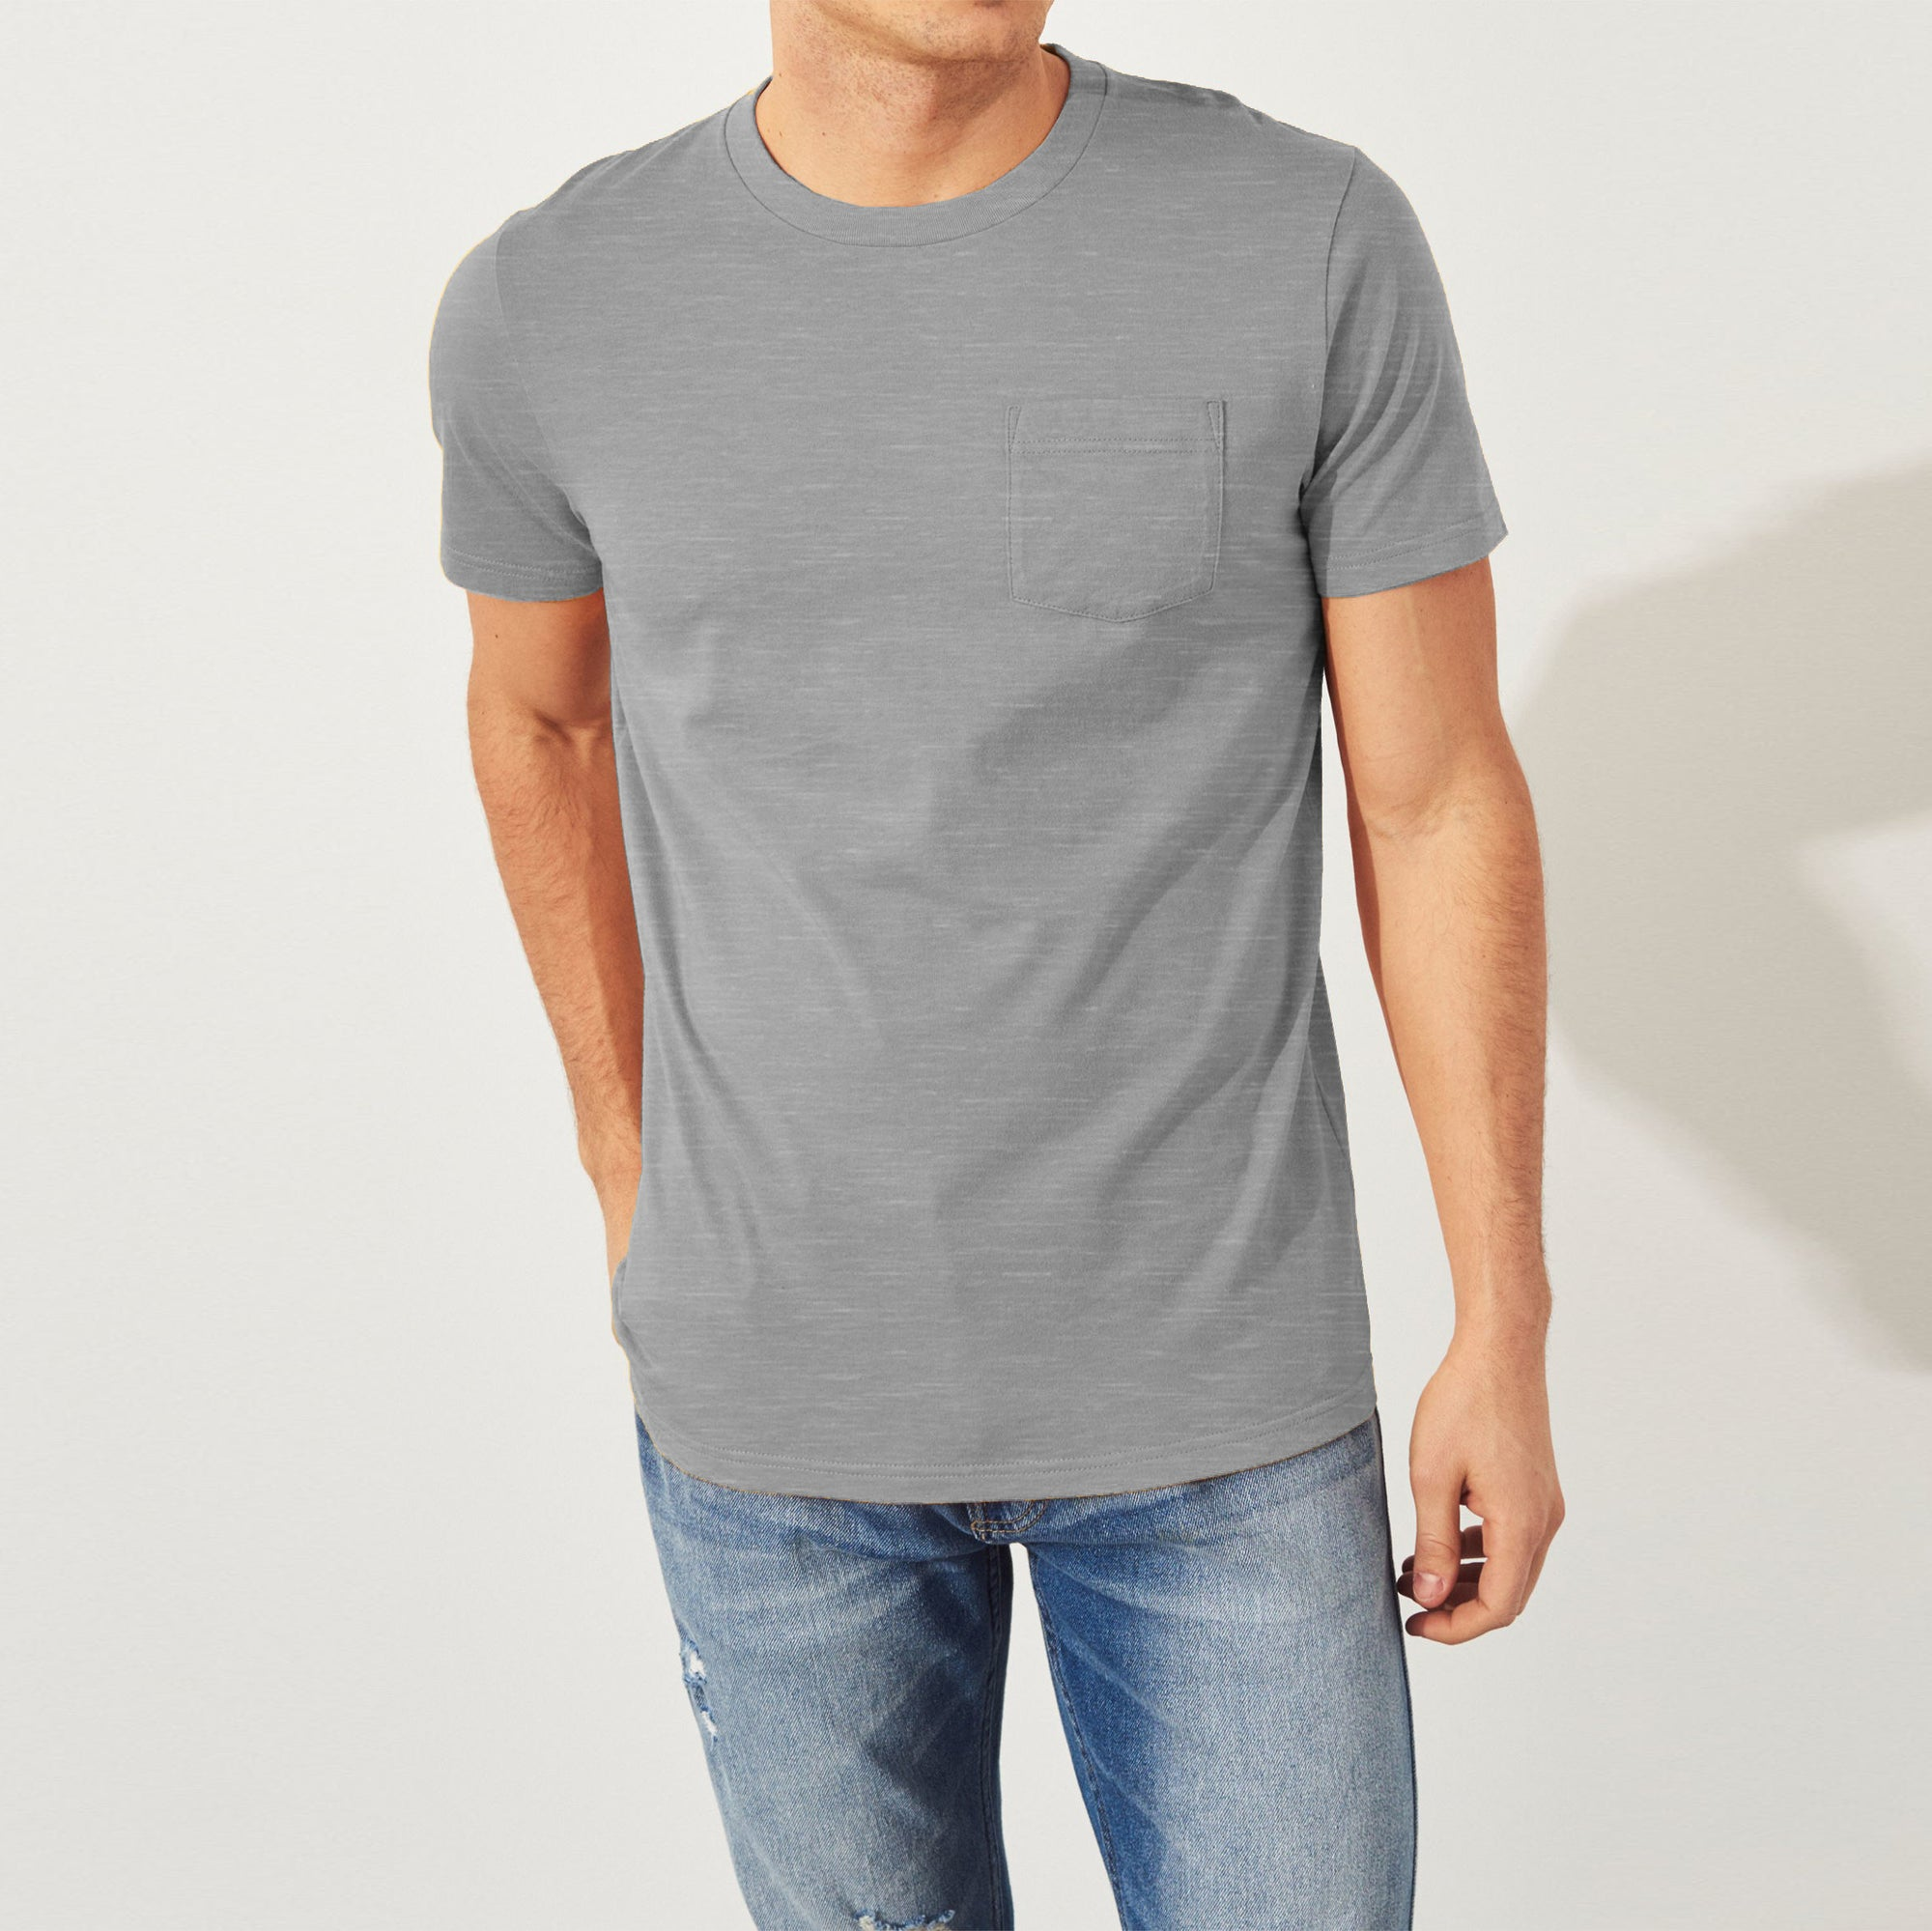 River Island Crew Neck Single Jersey Tee Shirt For Men-Slate Grey-NA8622